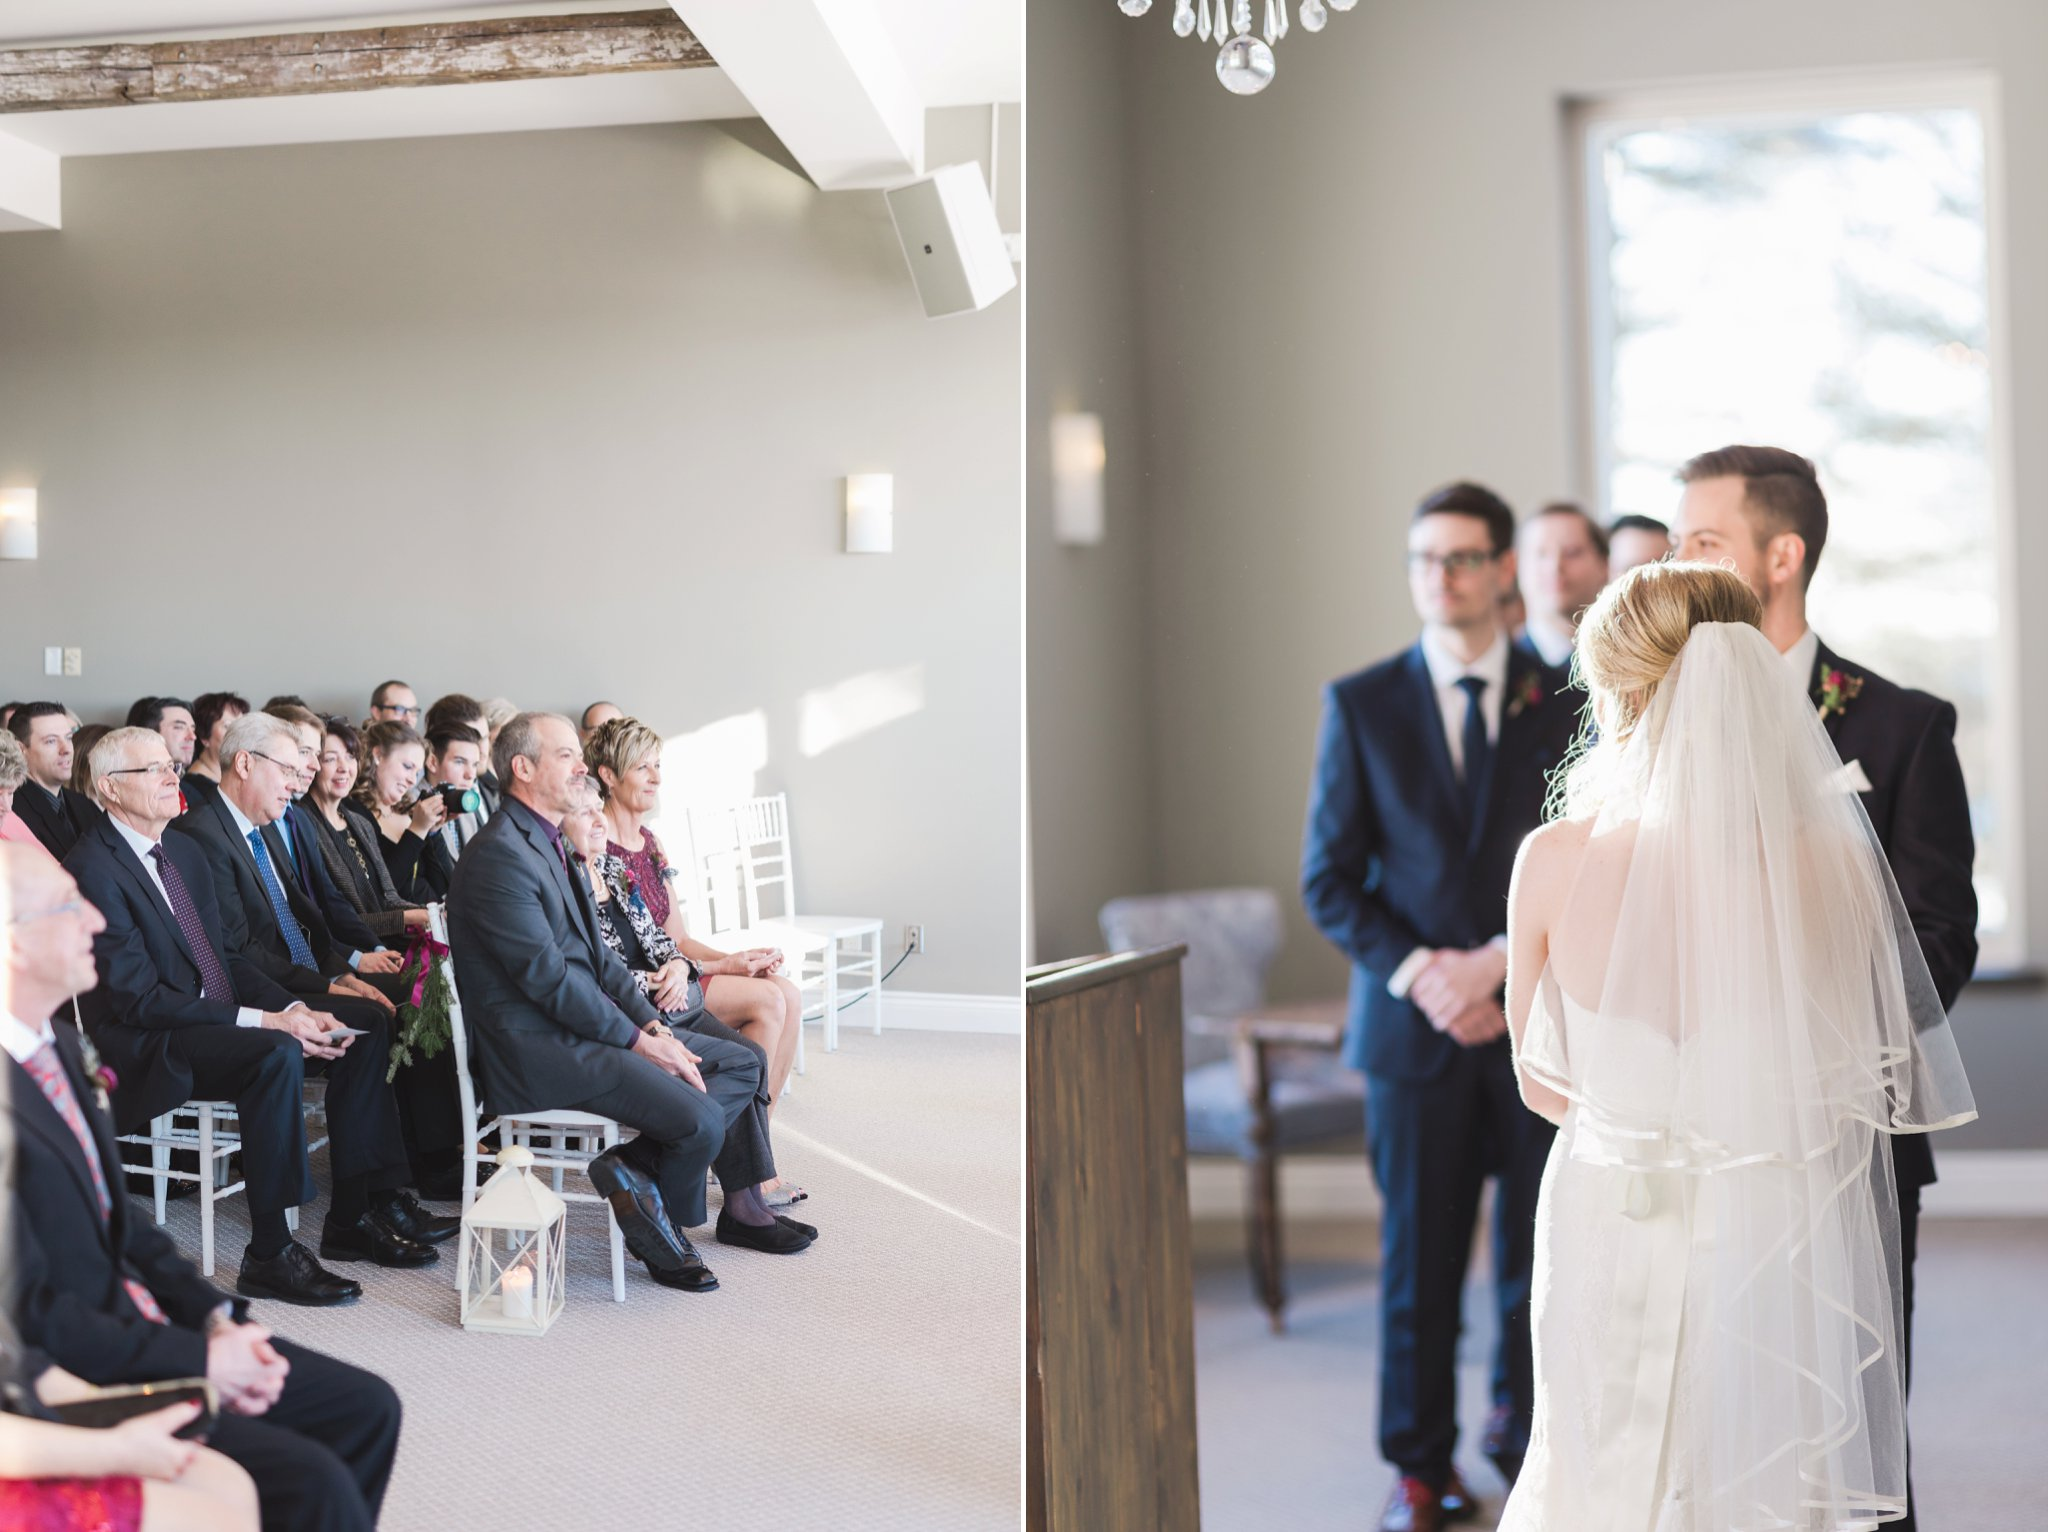 Indoor ceremony at the Winter wedding at Le Belvedere